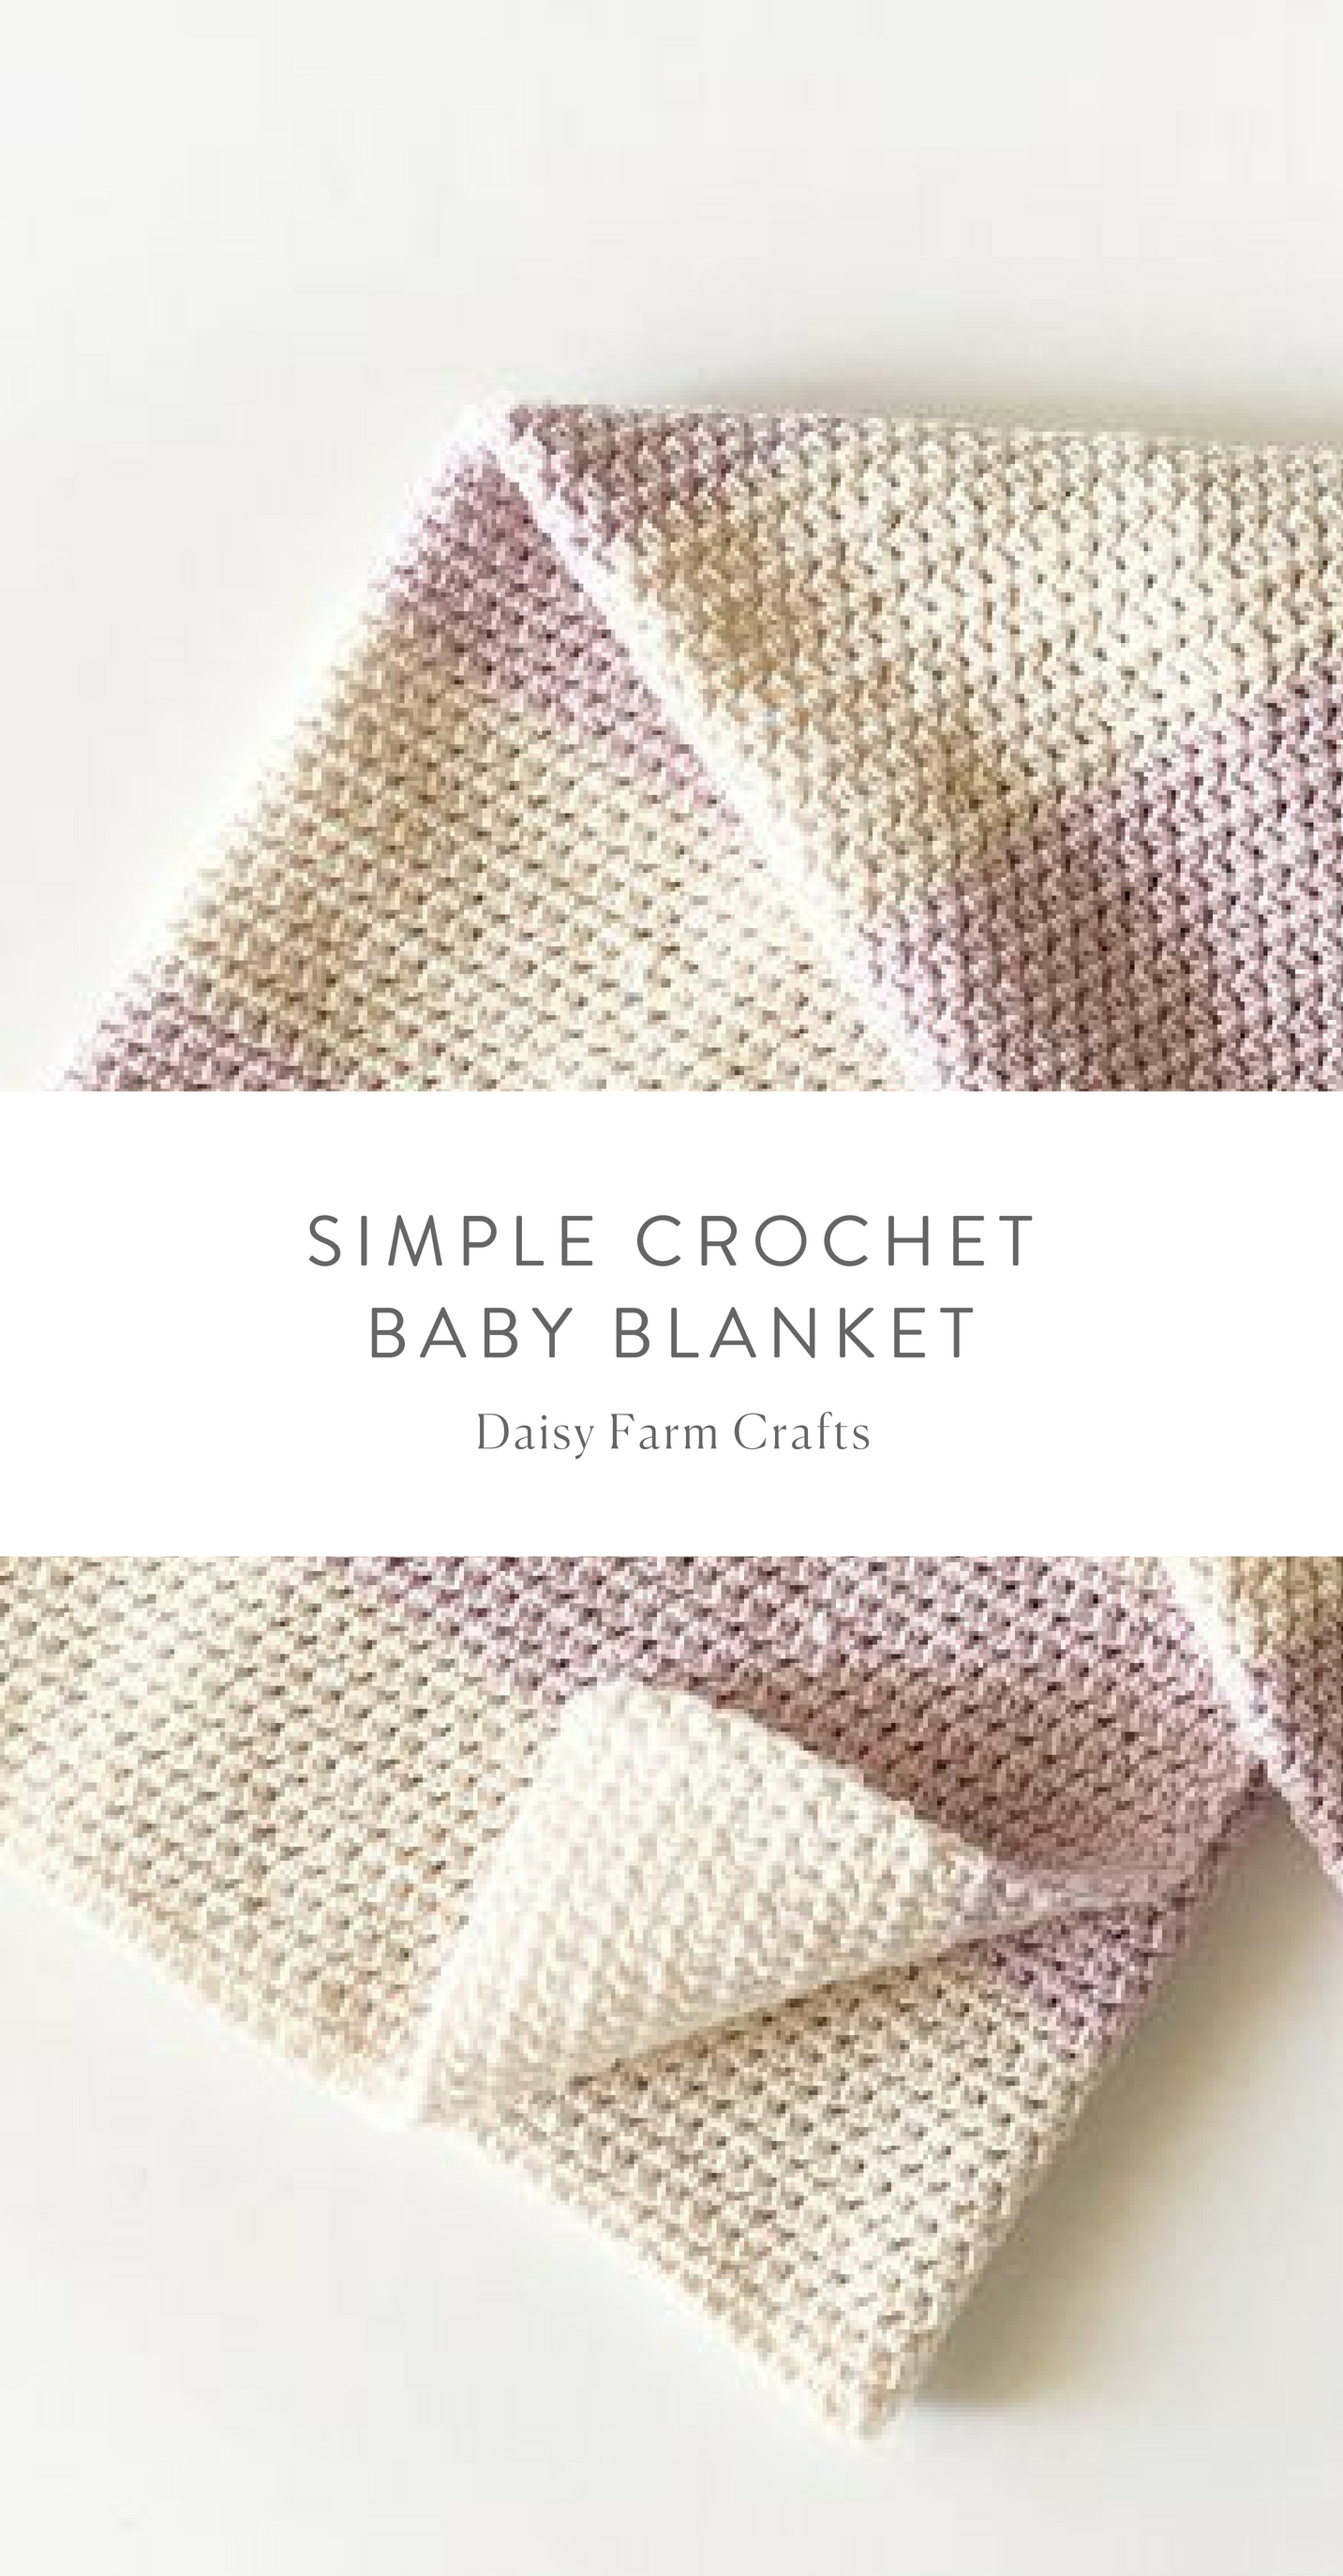 Free Pattern - Simple Crochet Baby Blanket #crochet | CROCHET ...